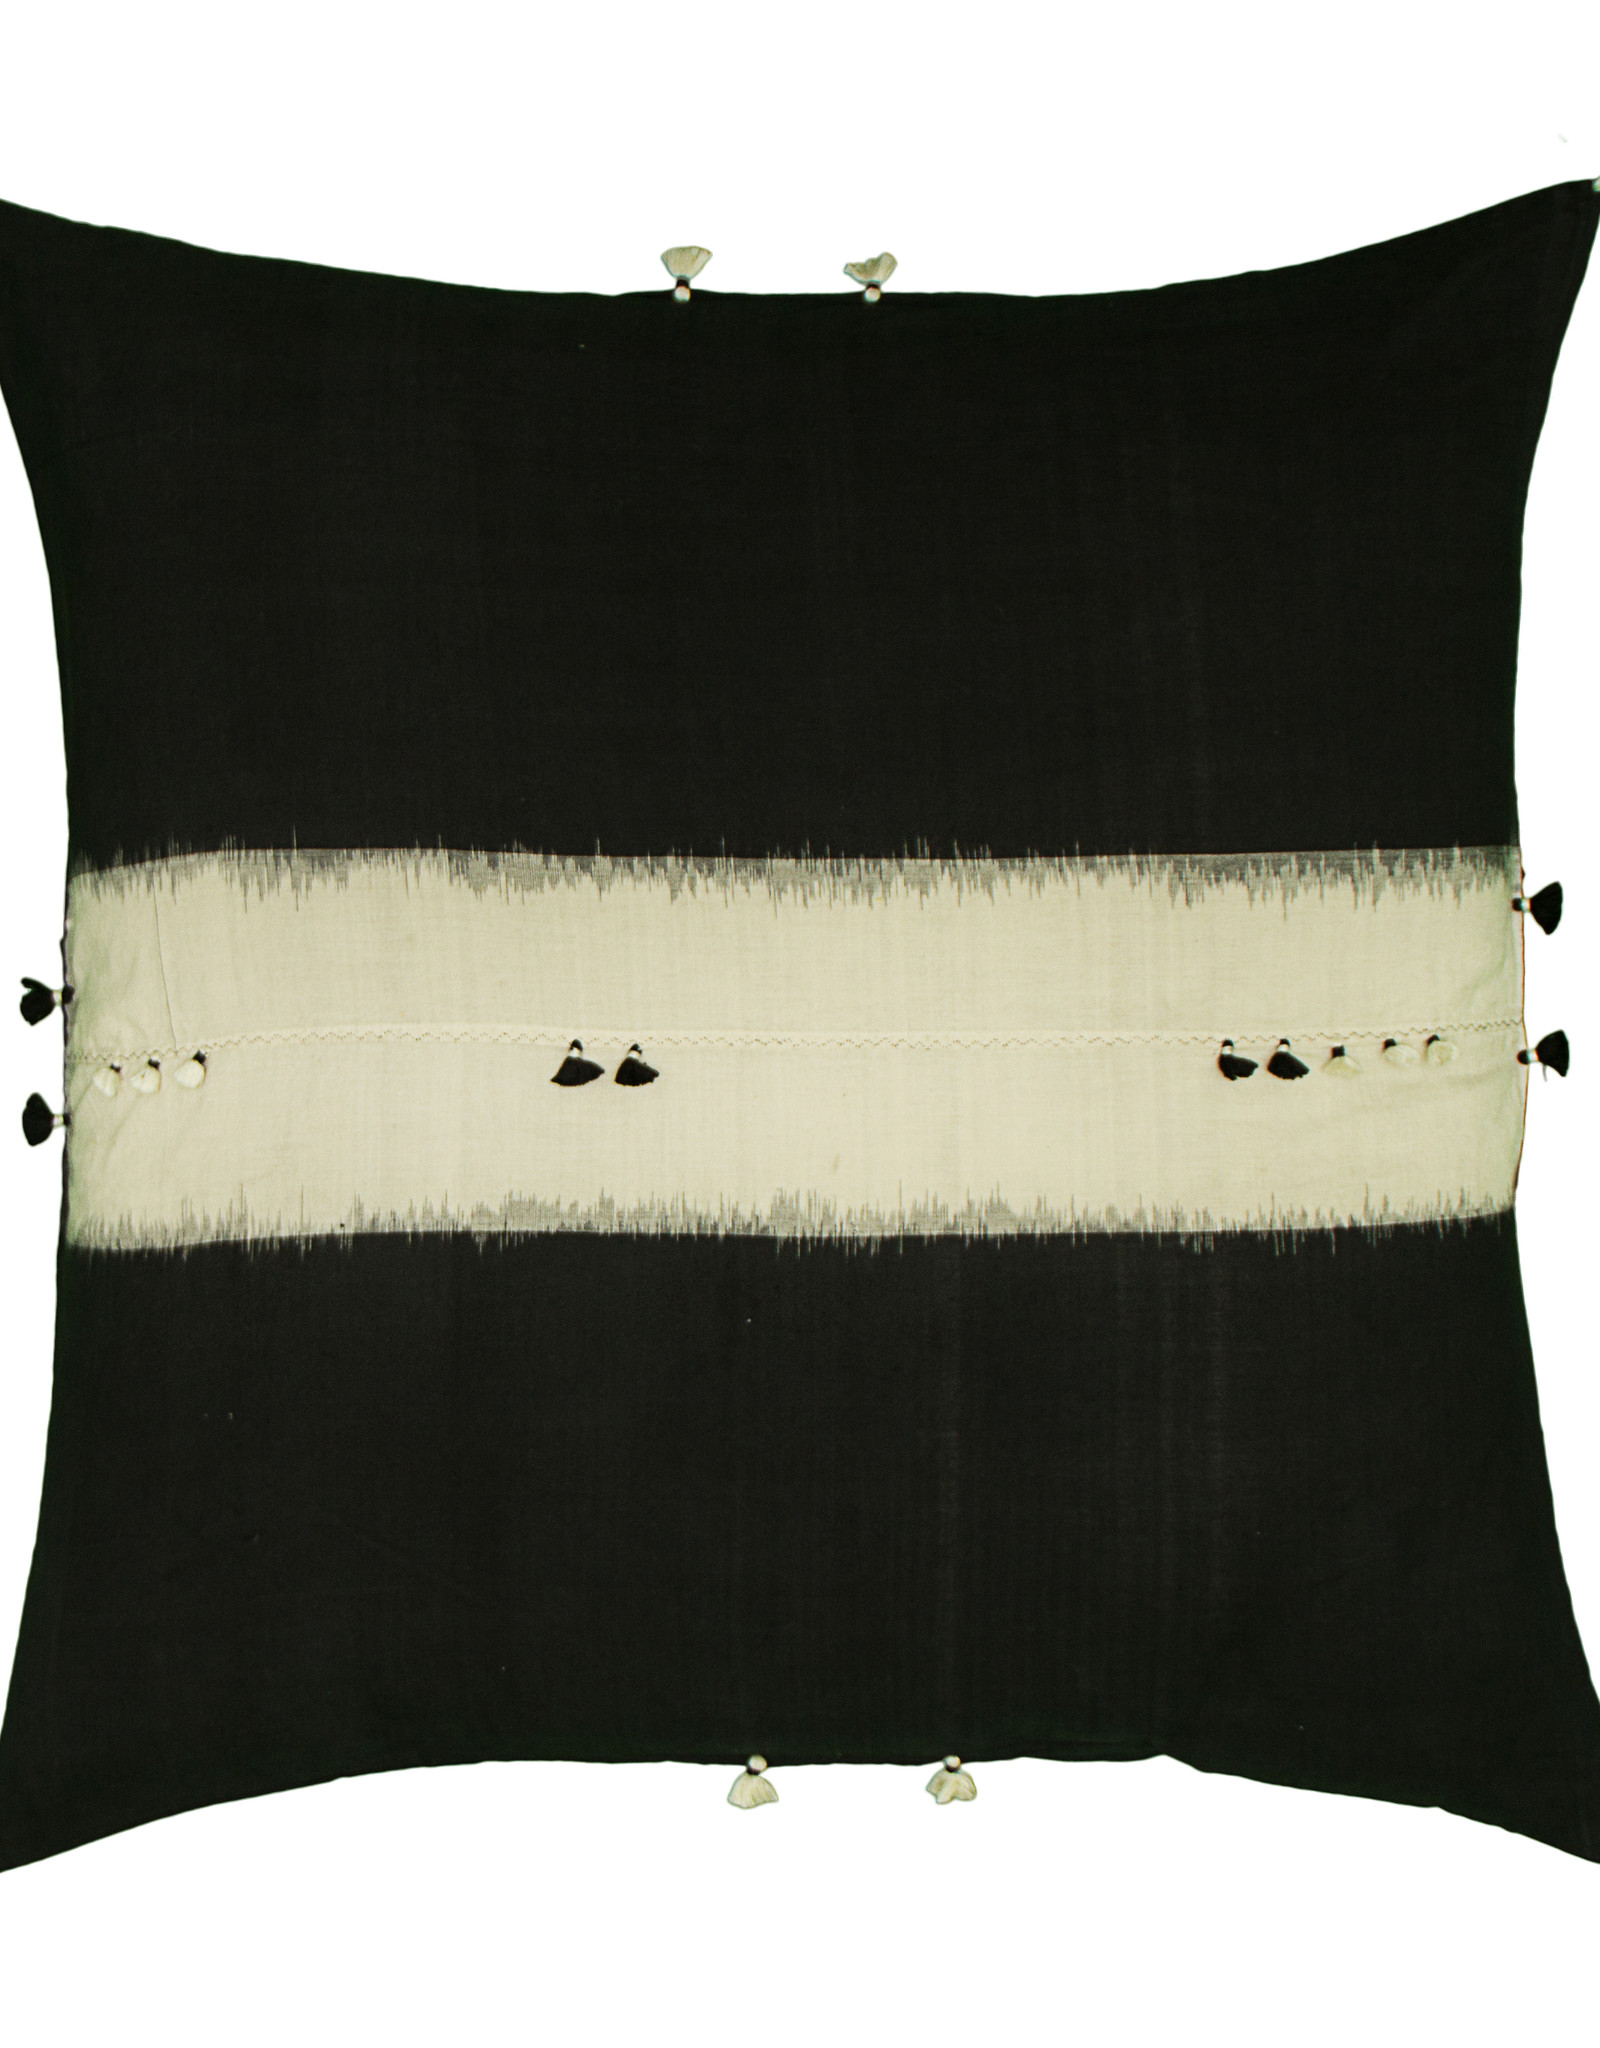 INJIRI Rebari 44A Cushion Cover